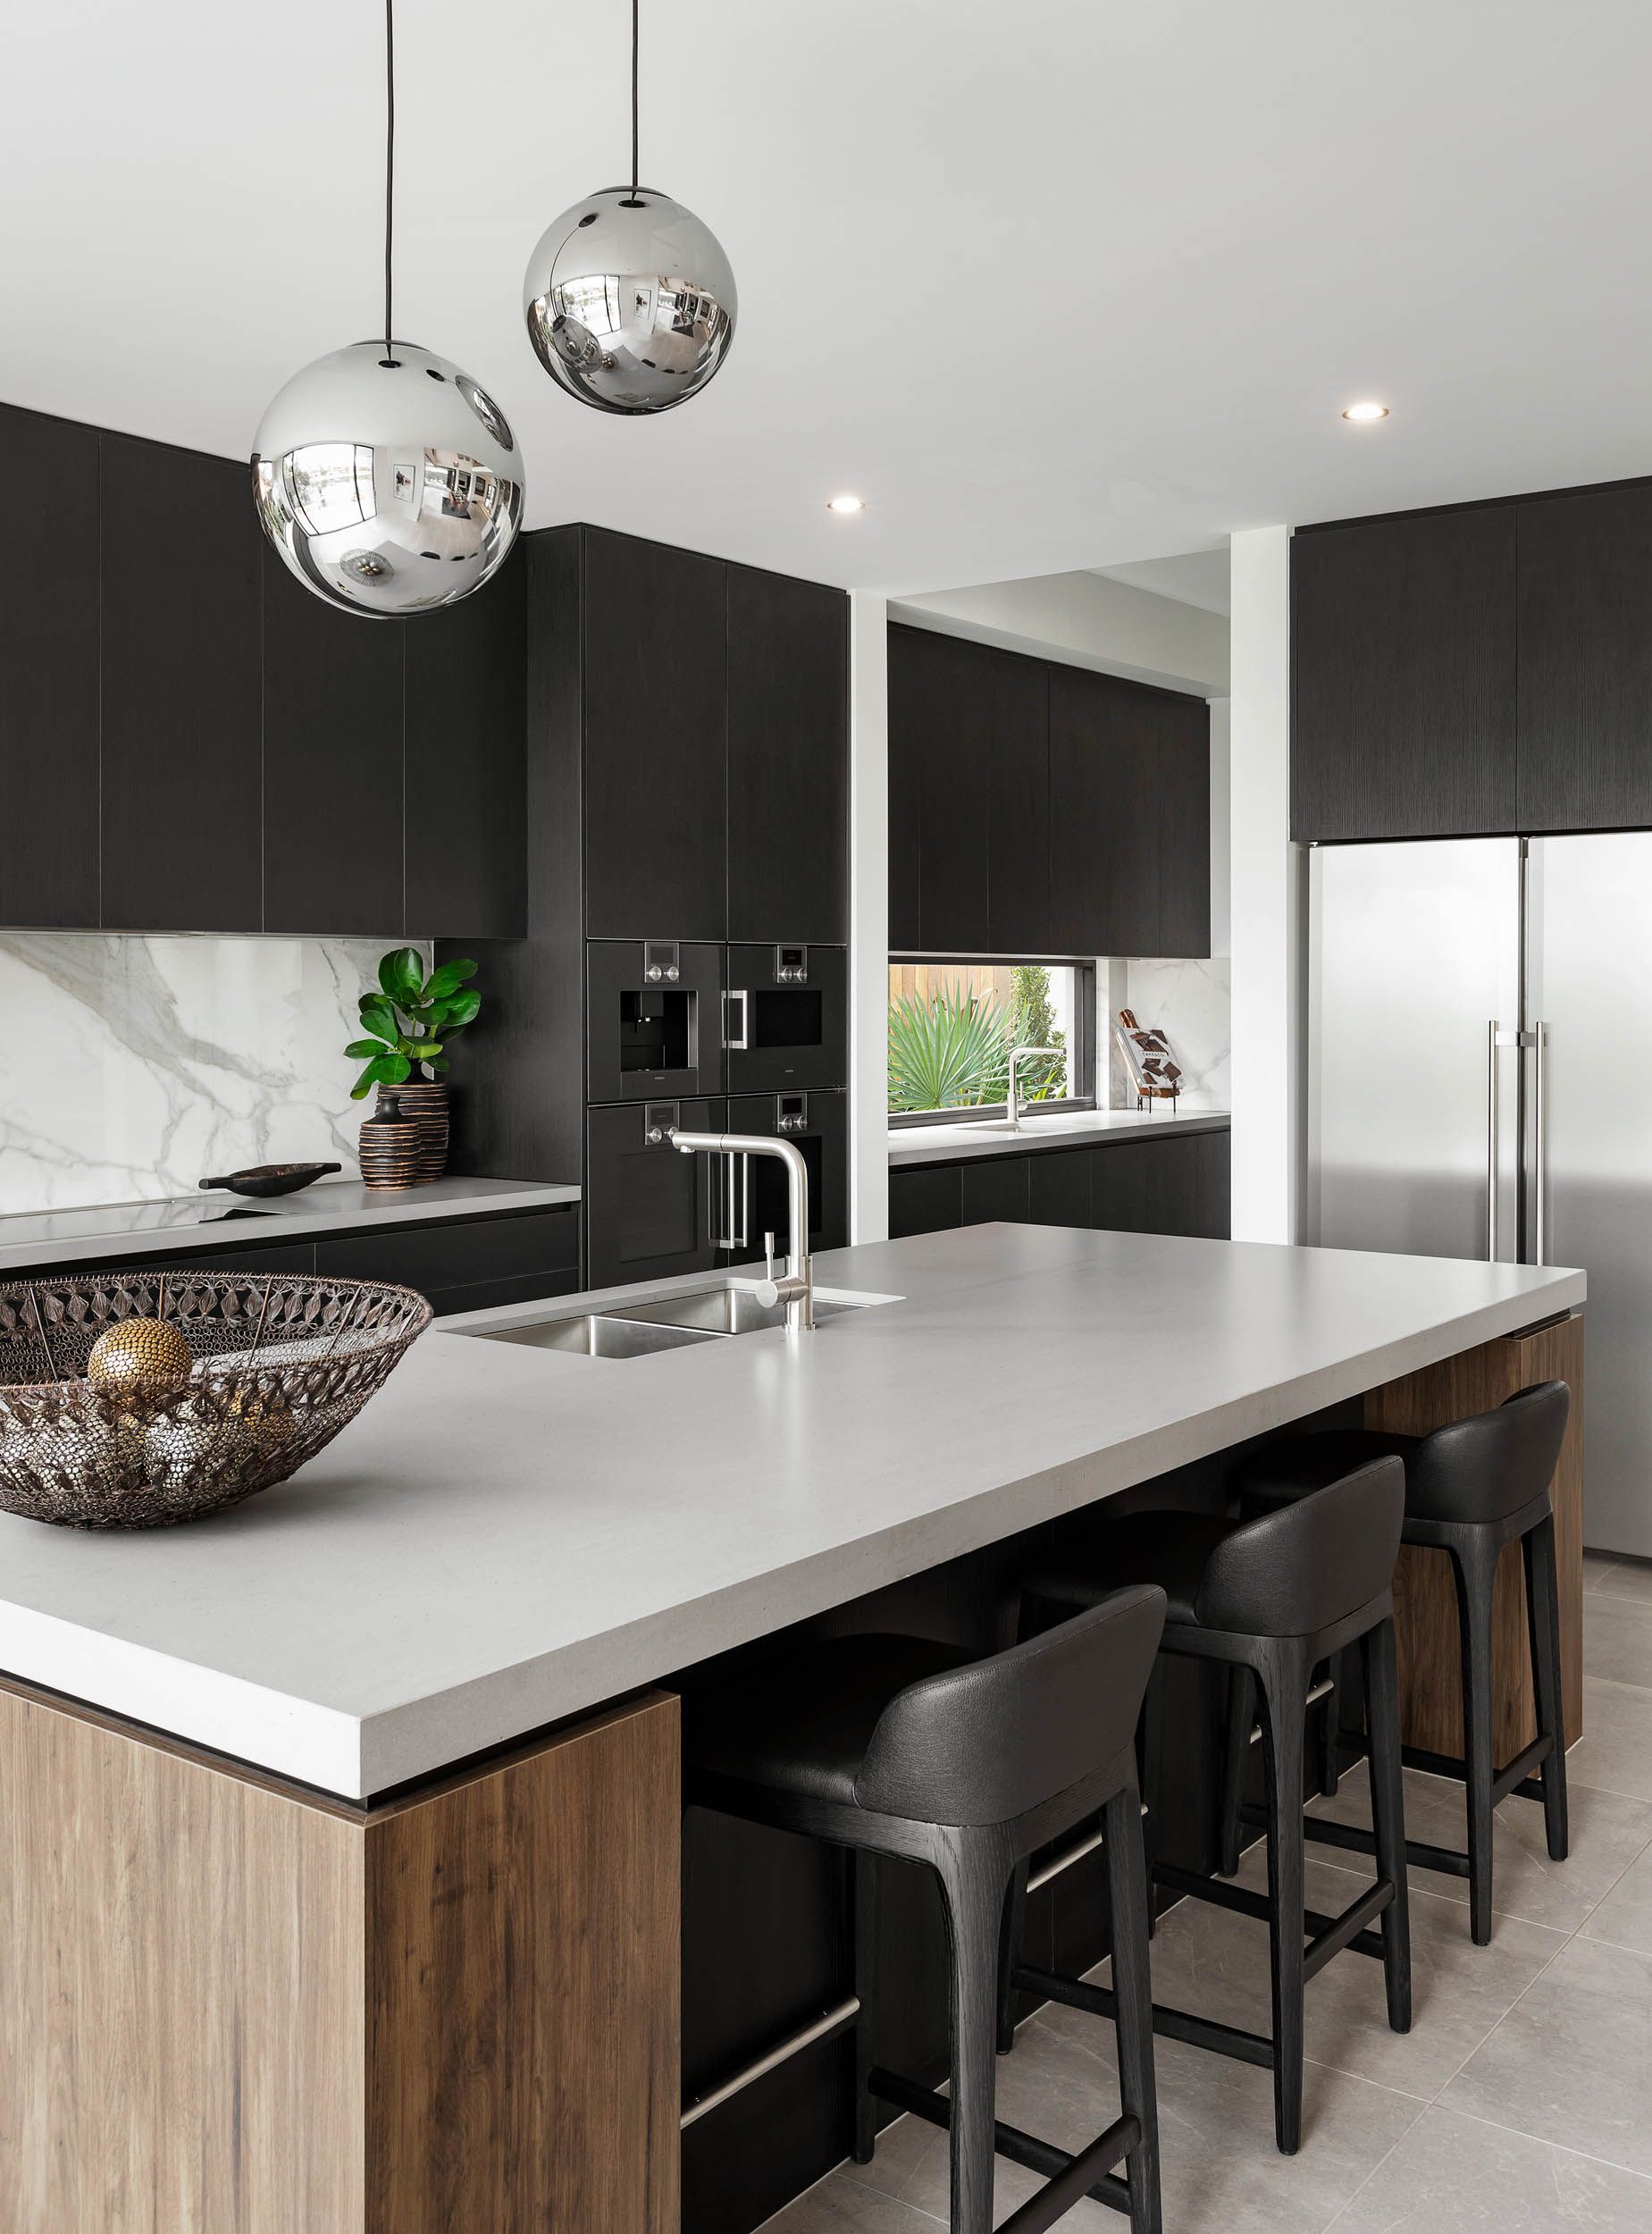 Kitchen // The Signature By Metricon Riviera, On Display